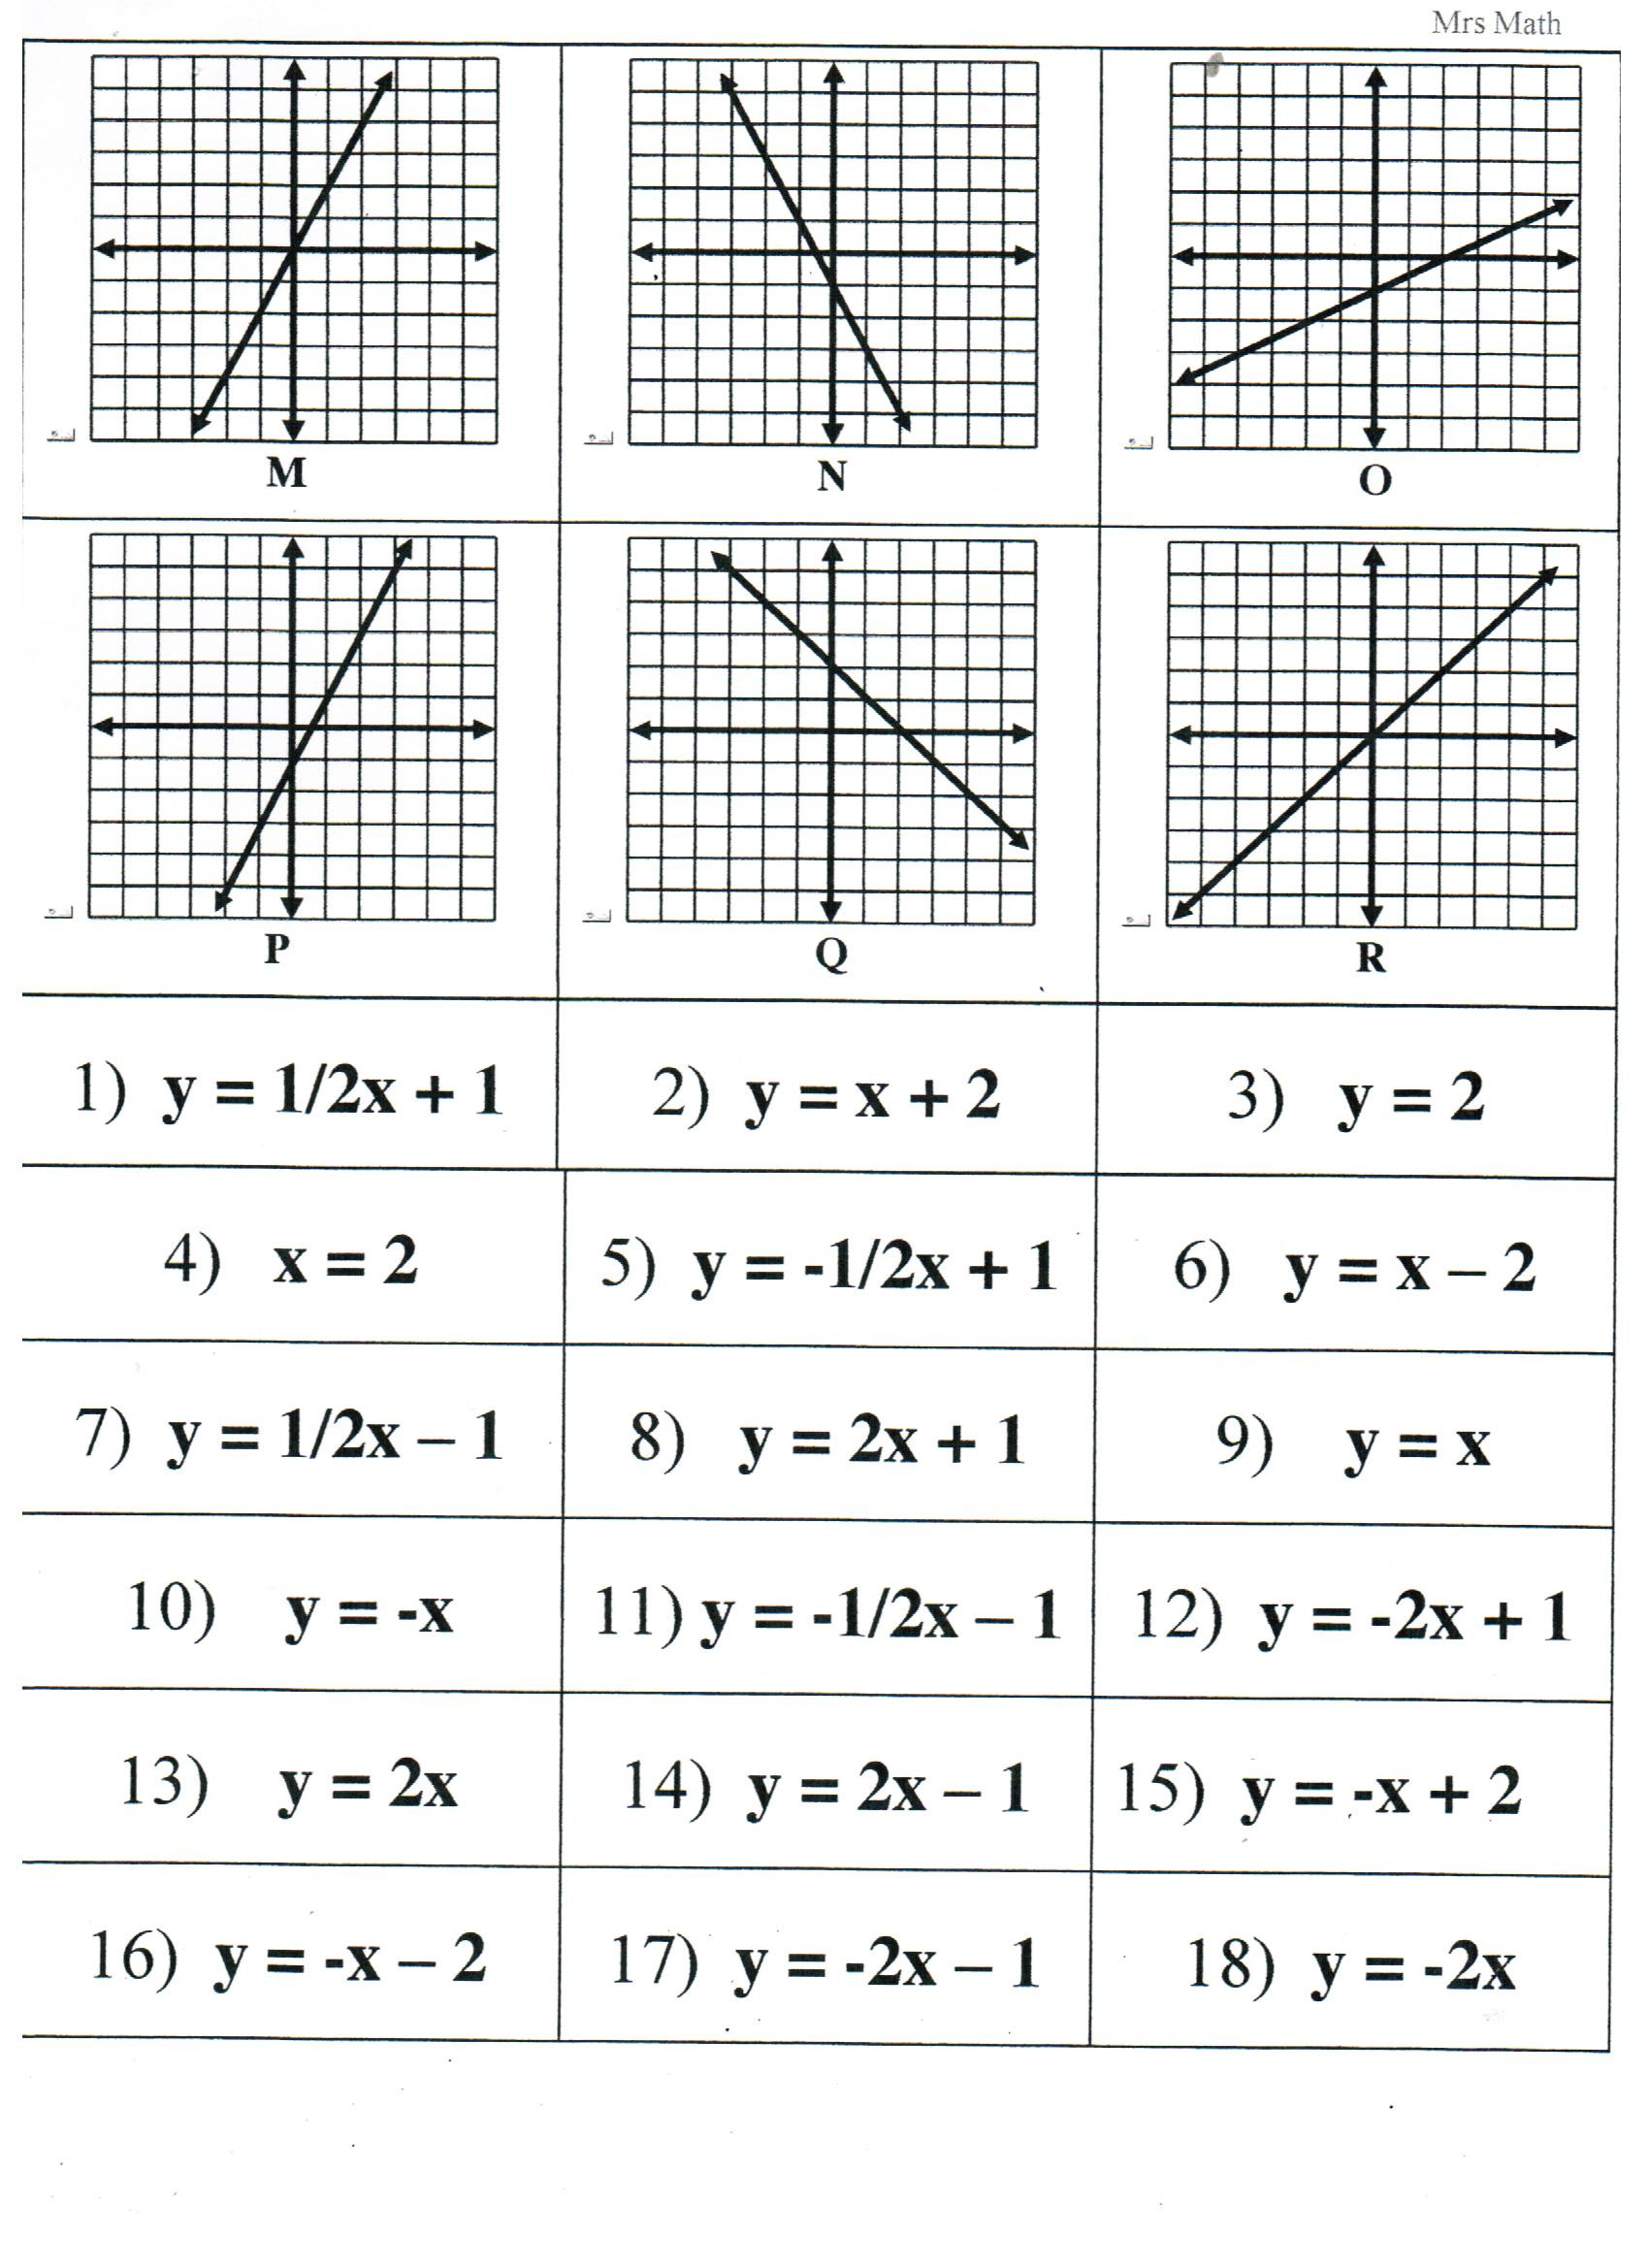 Writing Equations From Tables Worksheet Matching Equations Tables and Graphs Worksheet Answers